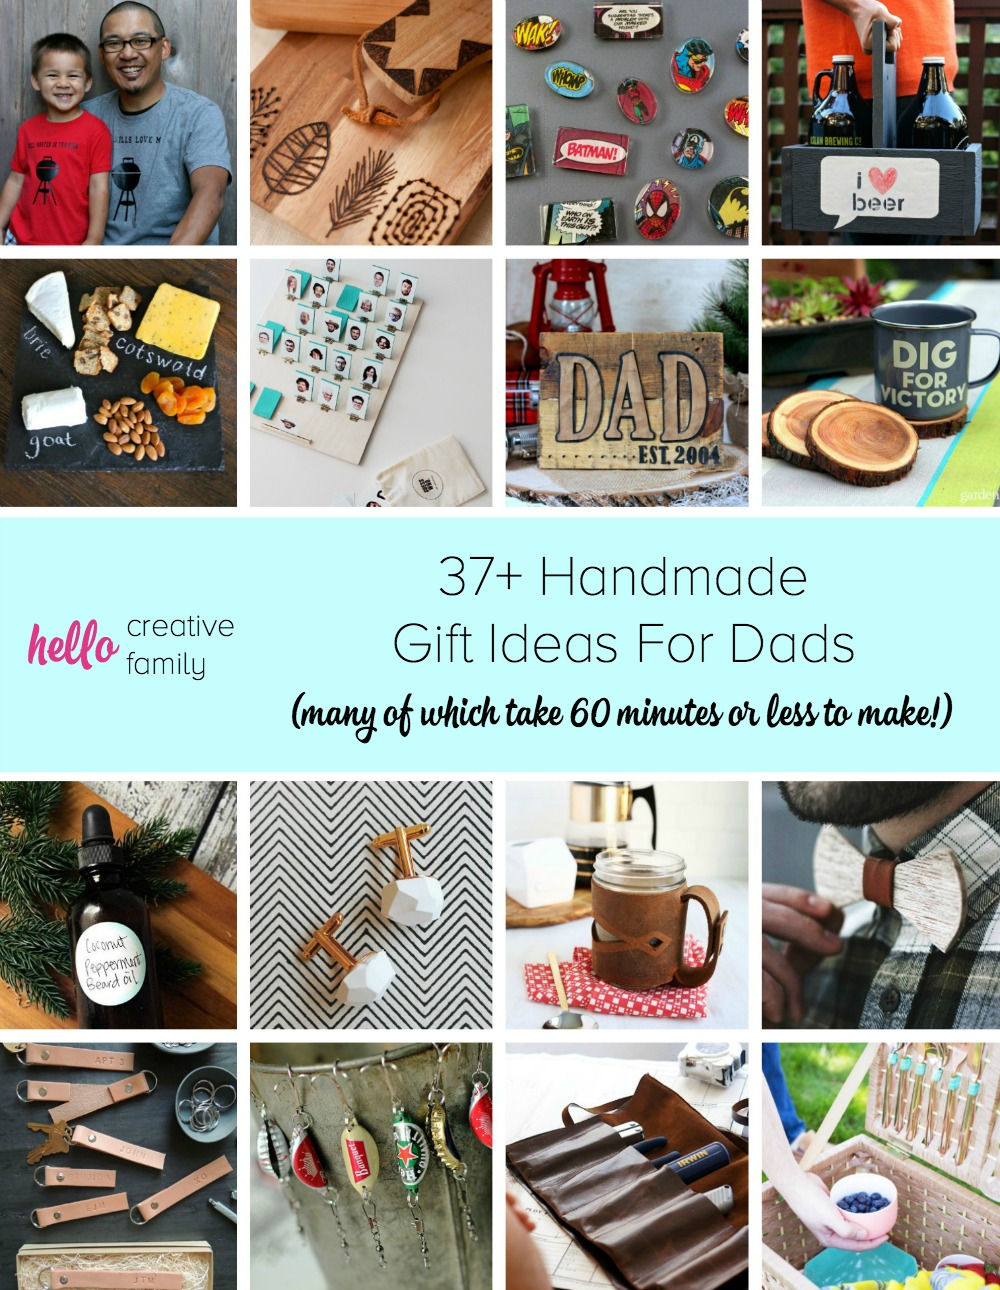 37+ Handmade Gift Ideas For Dads (many of which take 60 minutes or less : diy bday gifts for dad - princetonregatta.org